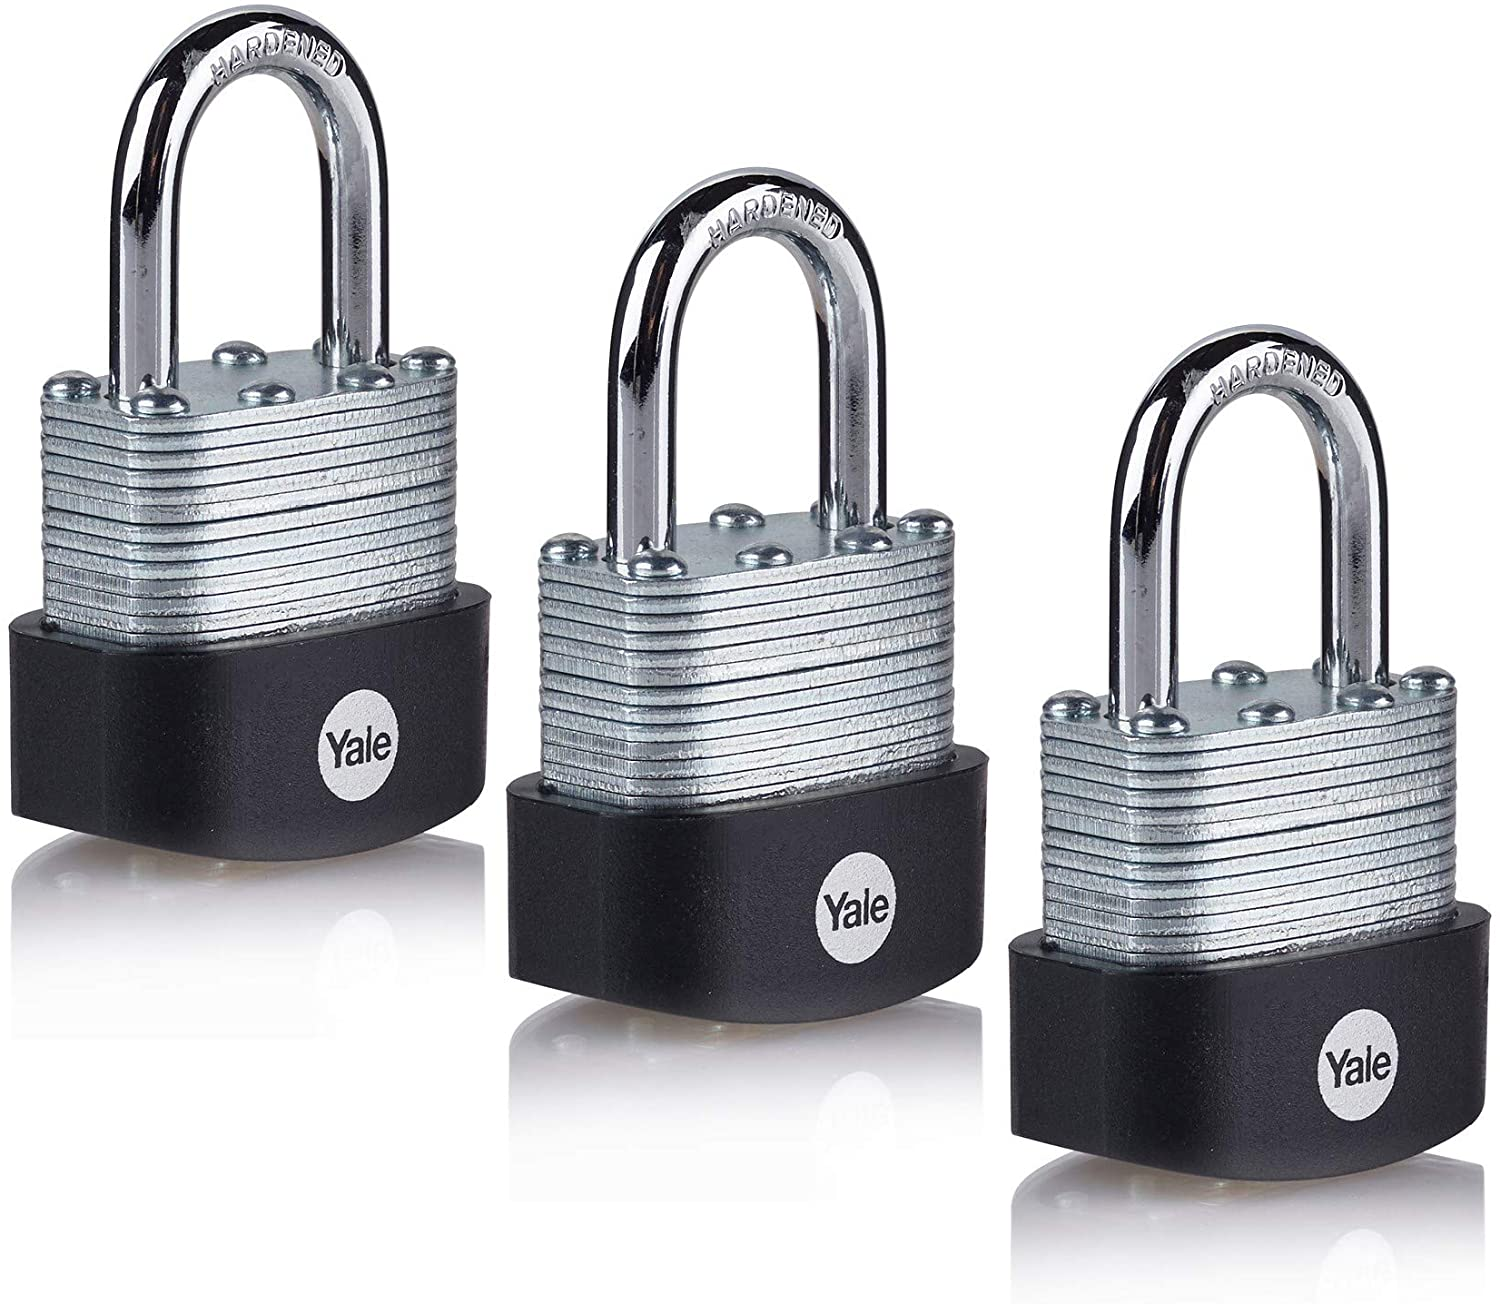 YALE Y125B/40/122/3 - 3 Pack of Laminated Steel Padlocks (50mm) - Outdoor Hardened Steel Shackle Locks for Shed, Gate, Chain - 3 Keys Each - HIGH Security - Multipack